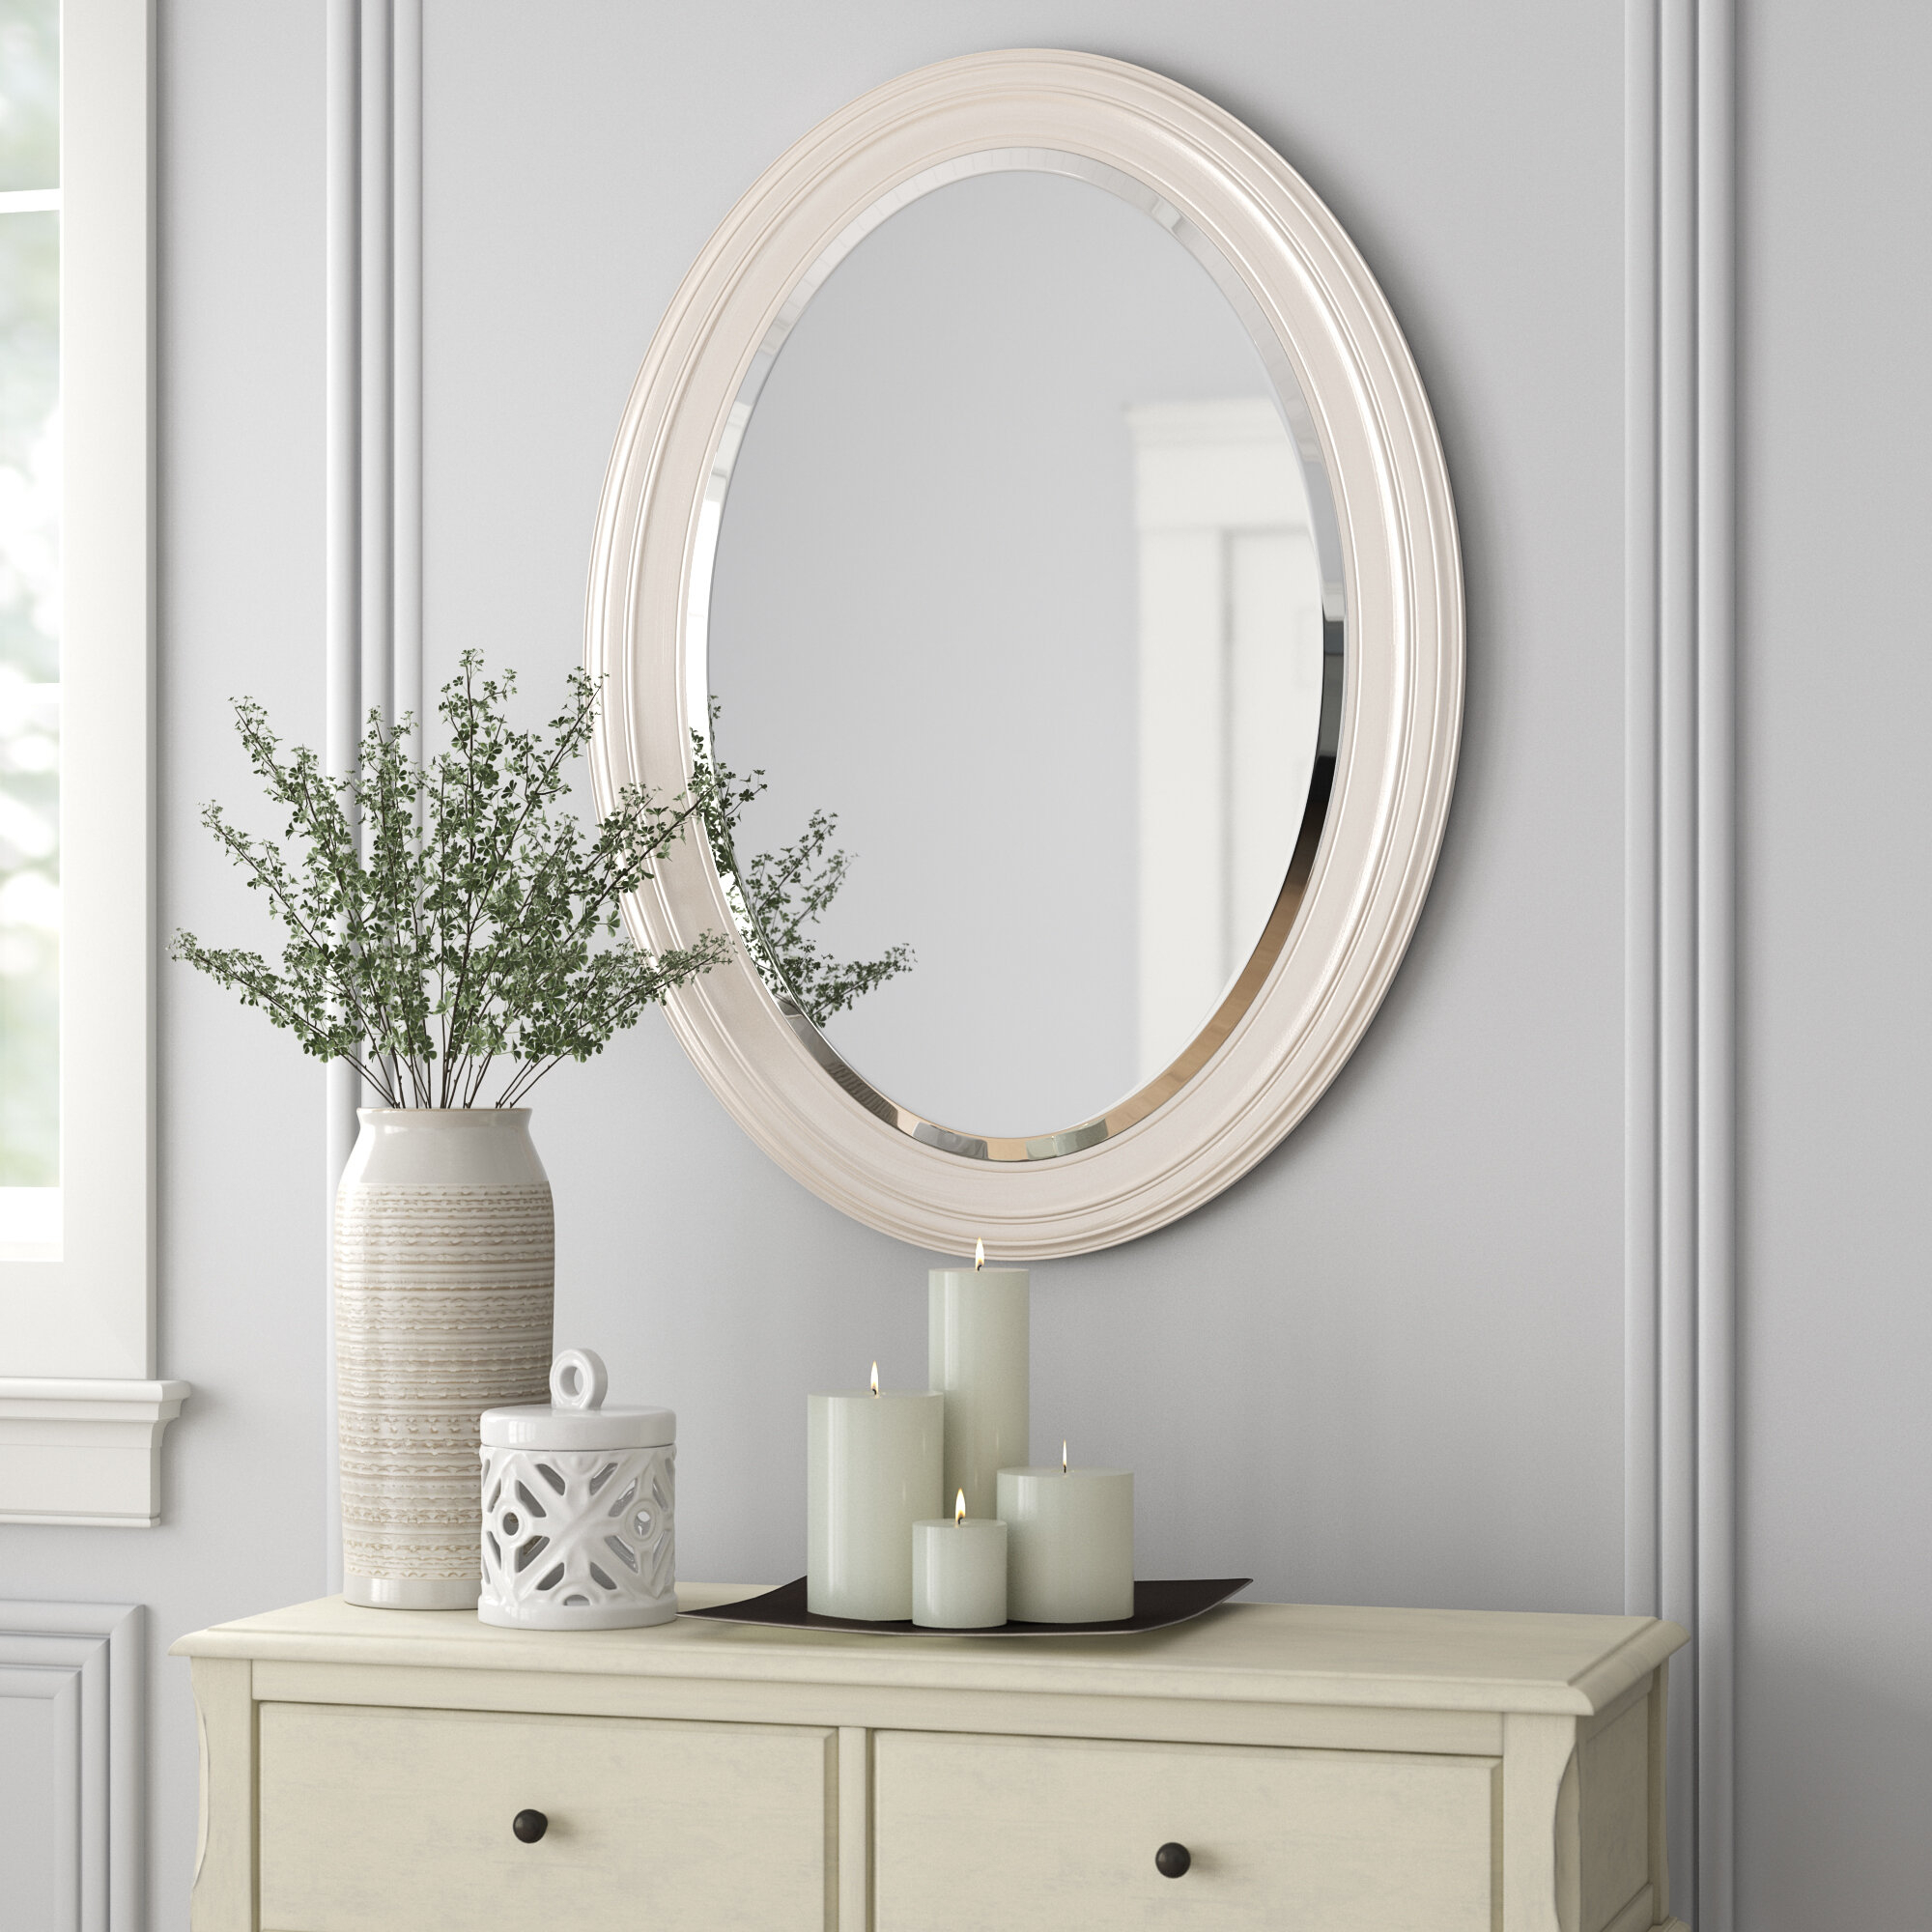 Pfister Oval Wood Wall Mirror With Oval Wood Wall Mirrors (View 12 of 20)